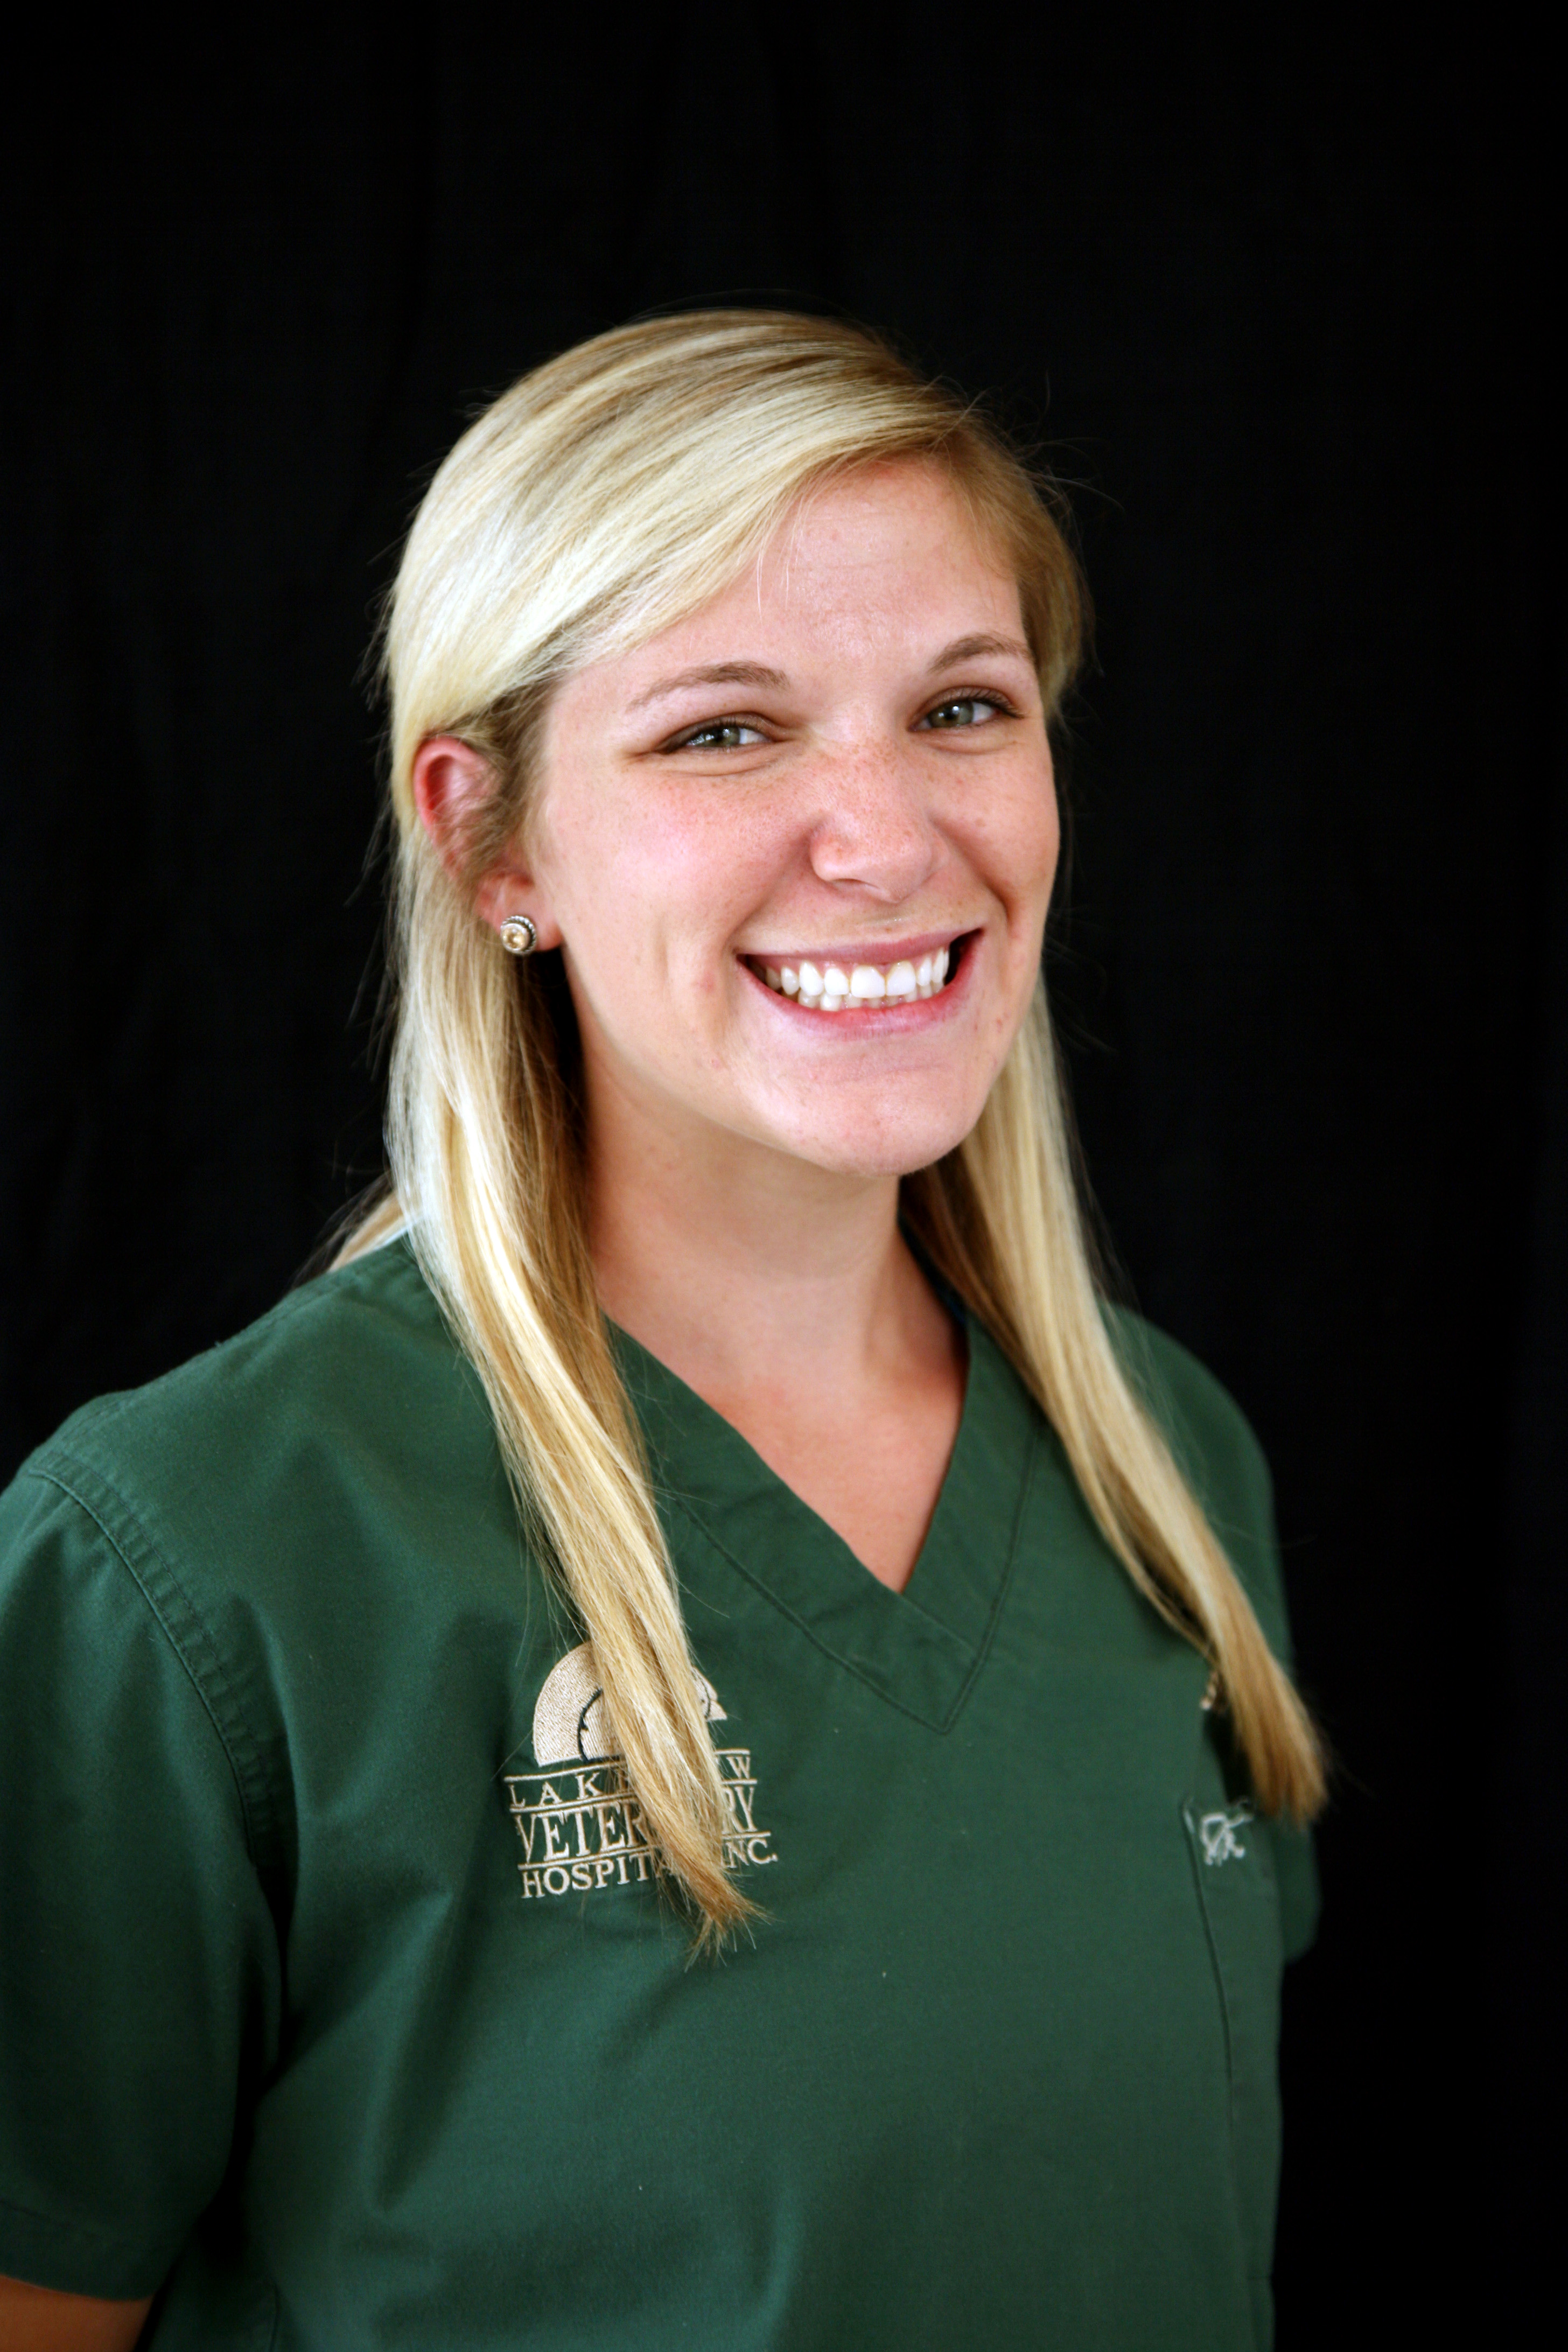 Staci Sternberger, Veterinary Nurse